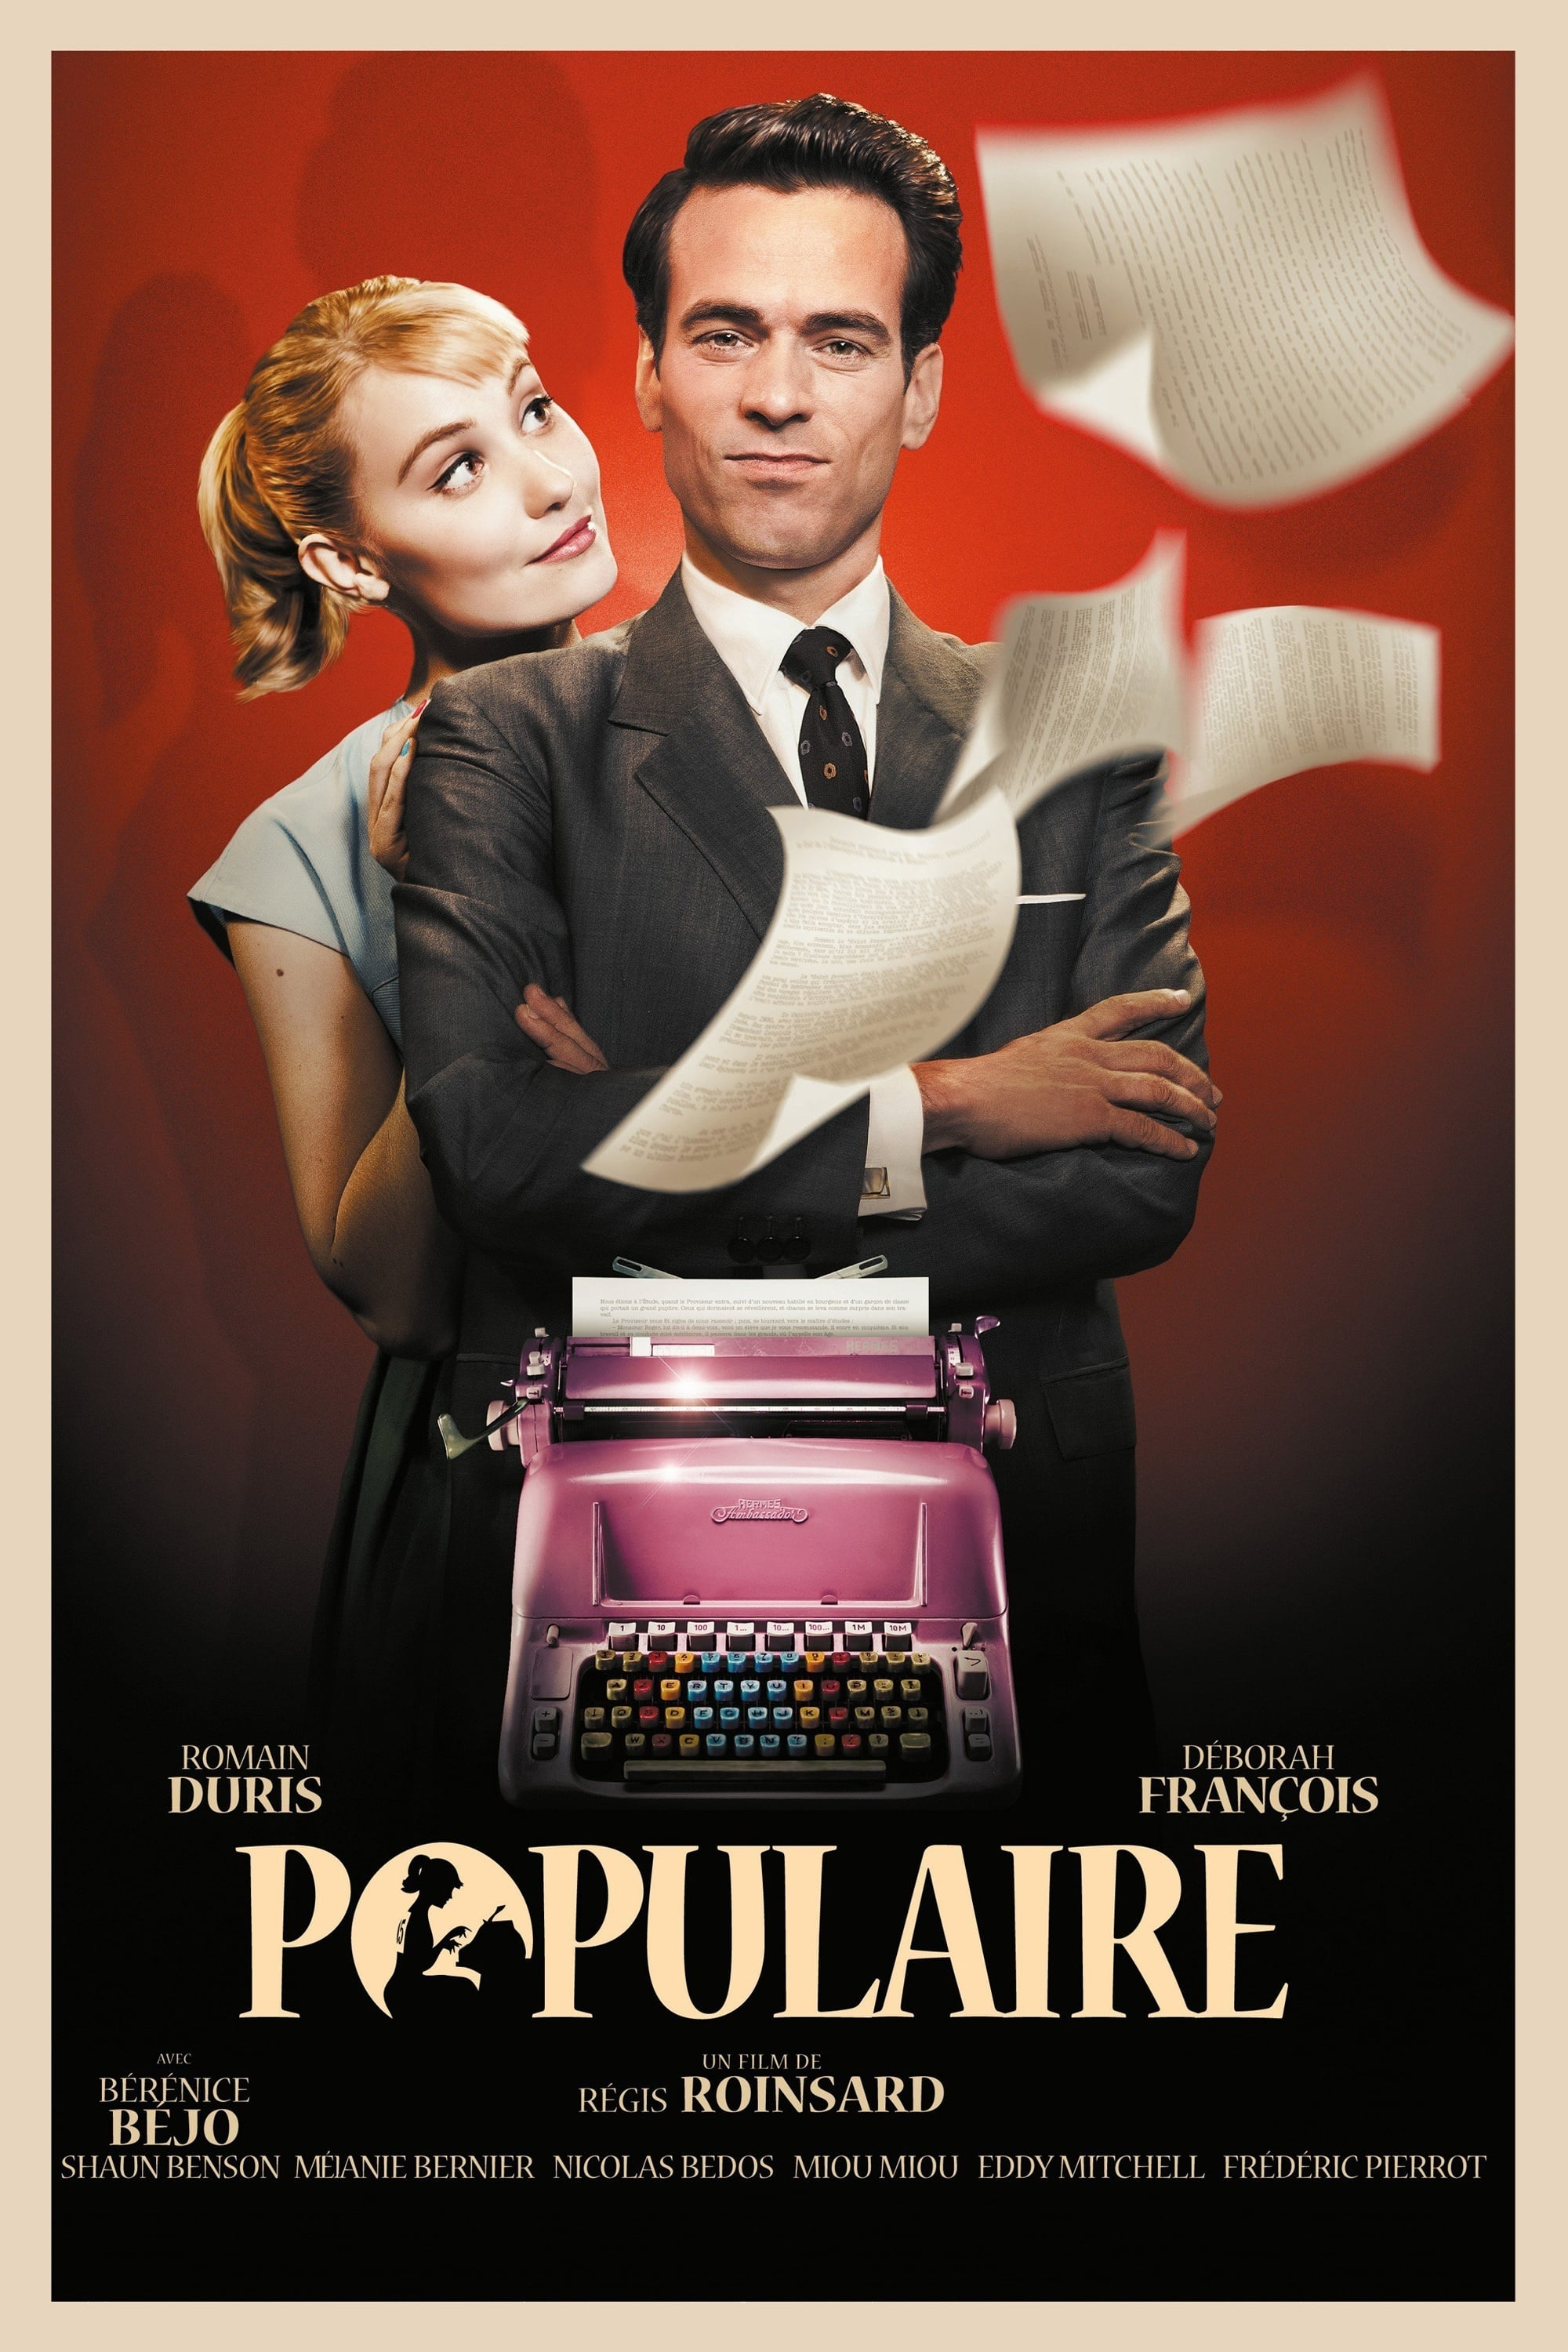 Populaire film watch online